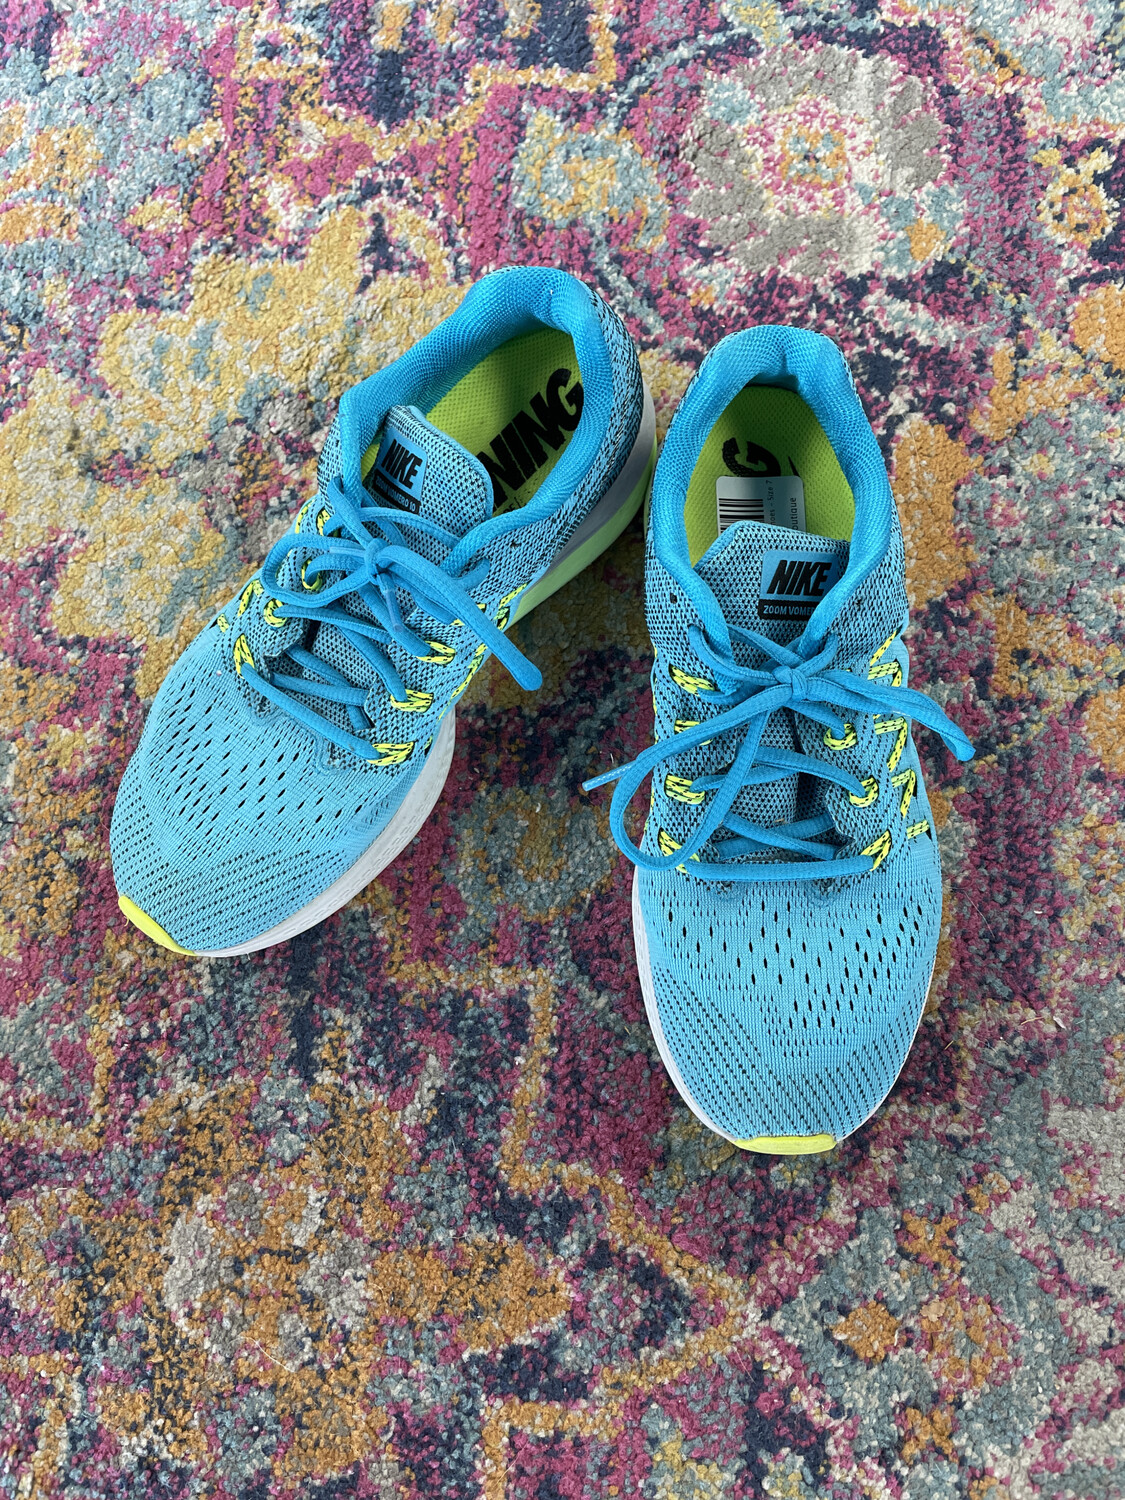 Nike Blue Zoom Running Shoes - Size 7